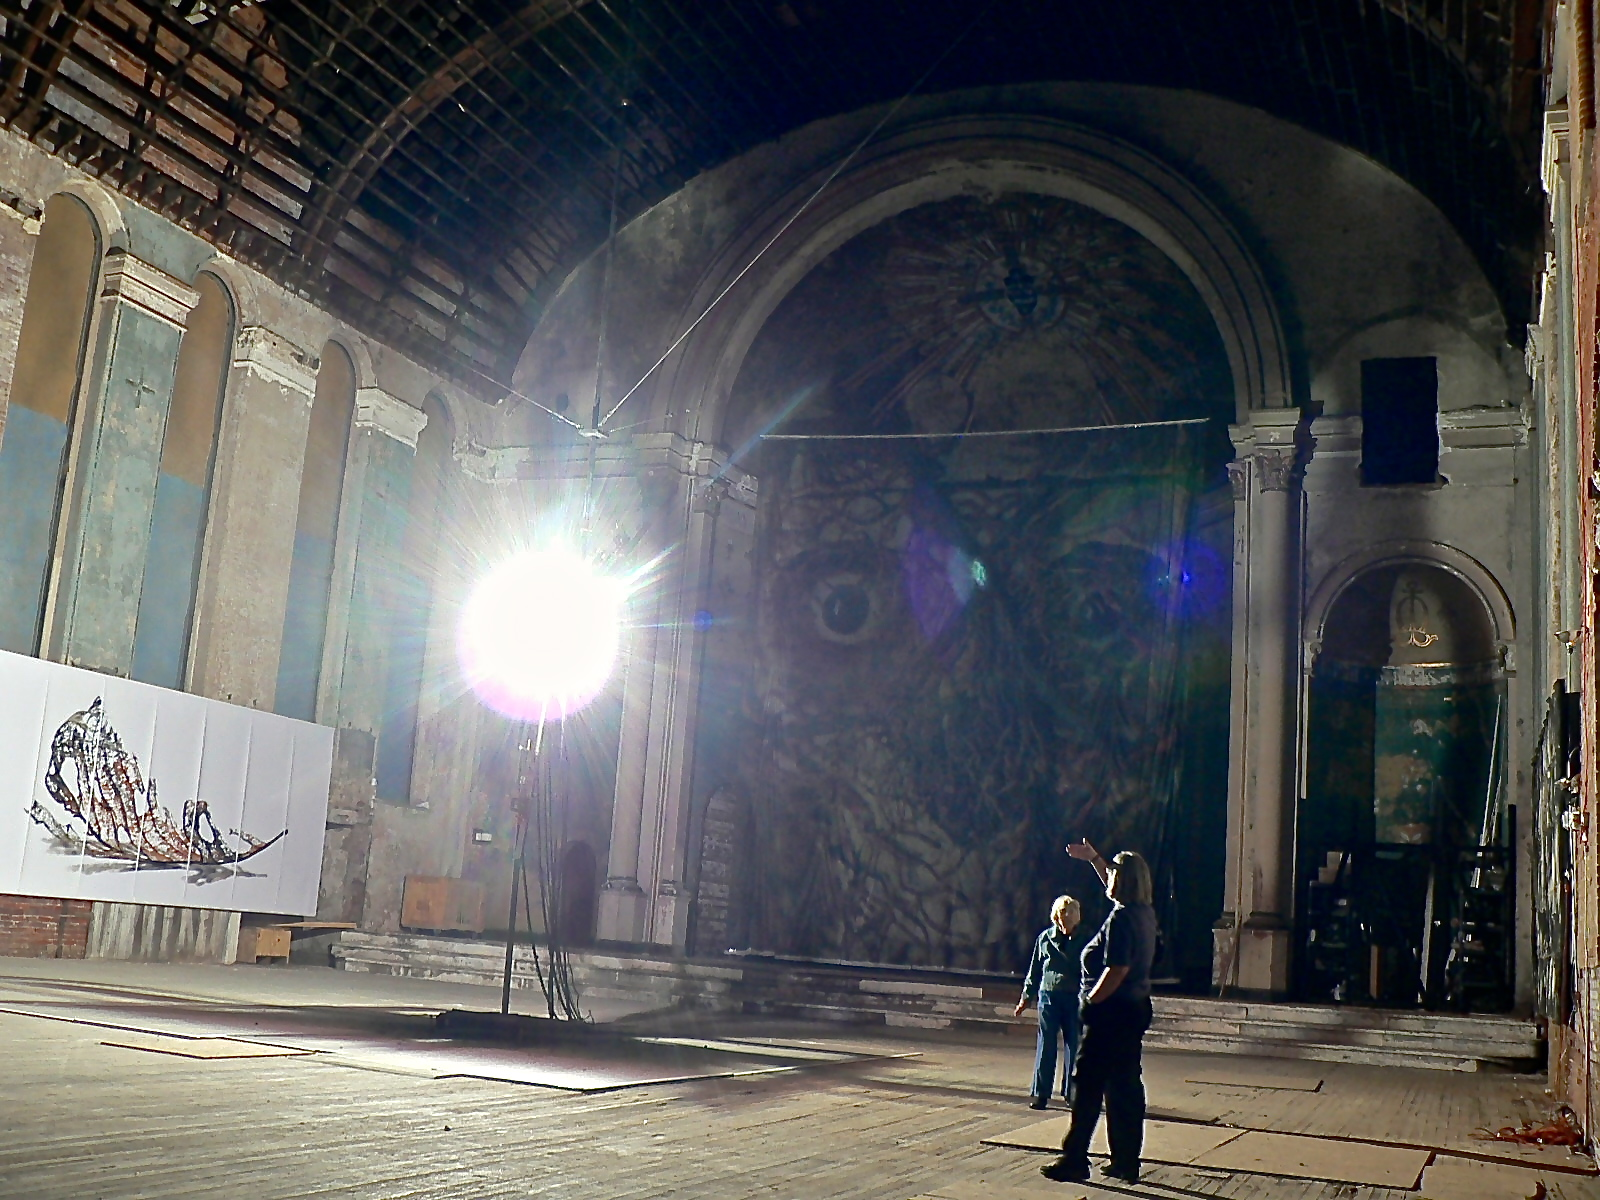 Artists Doug and Mike Starn bring pure illumination to an abandoned Cincinnati church